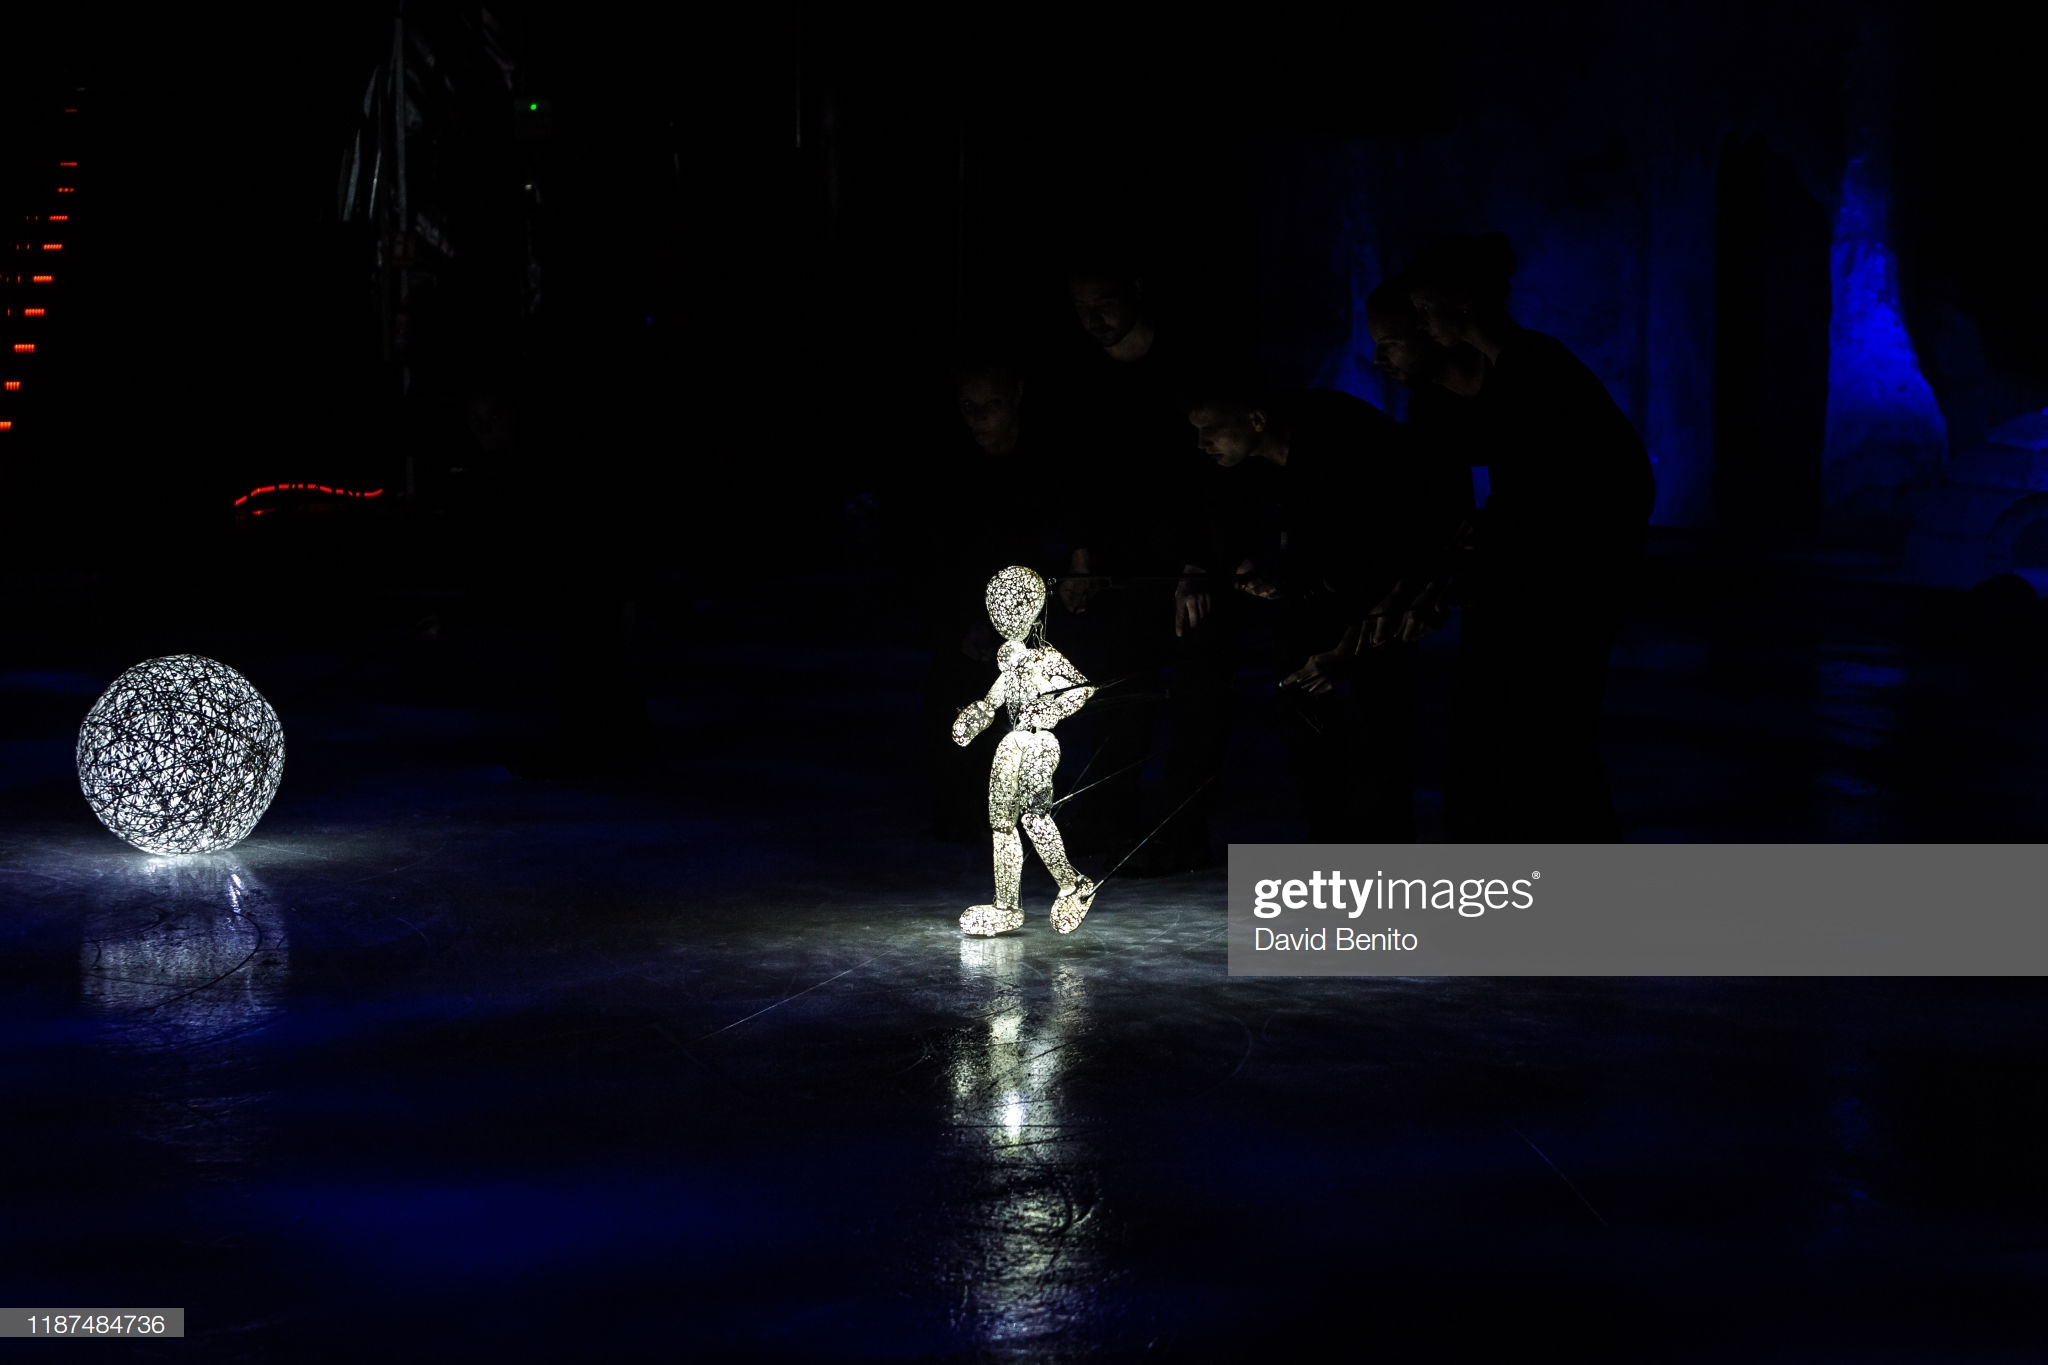 gettyimages-1187484736-2048x2048